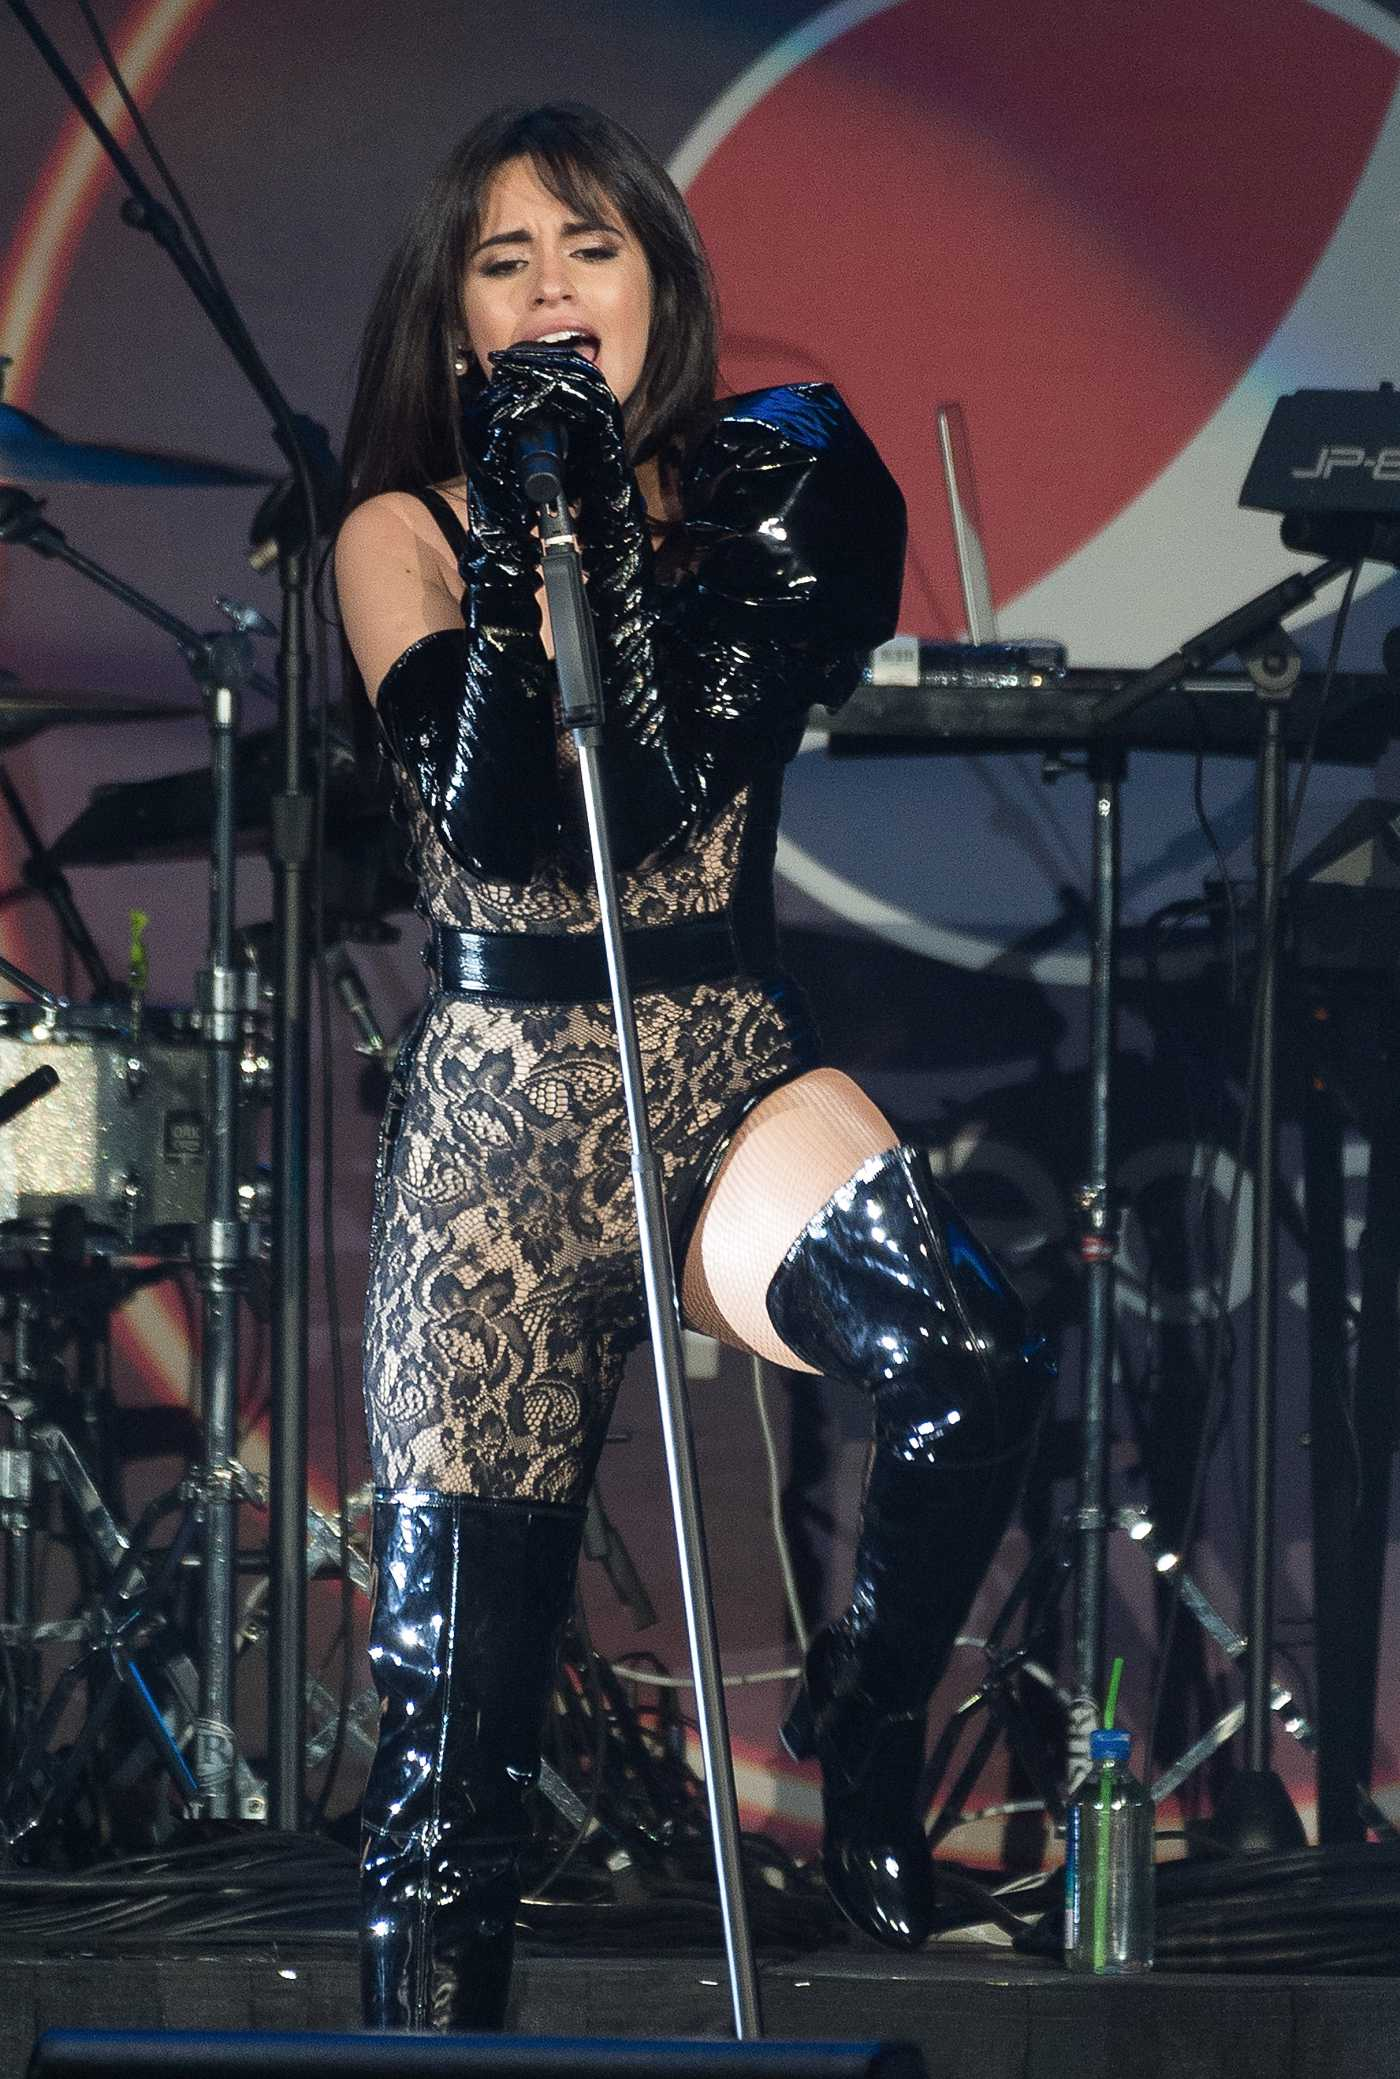 Camila Cabello Performs During B96 Jingle Bash at the Allstate Arena in Chicago 12/07/2019